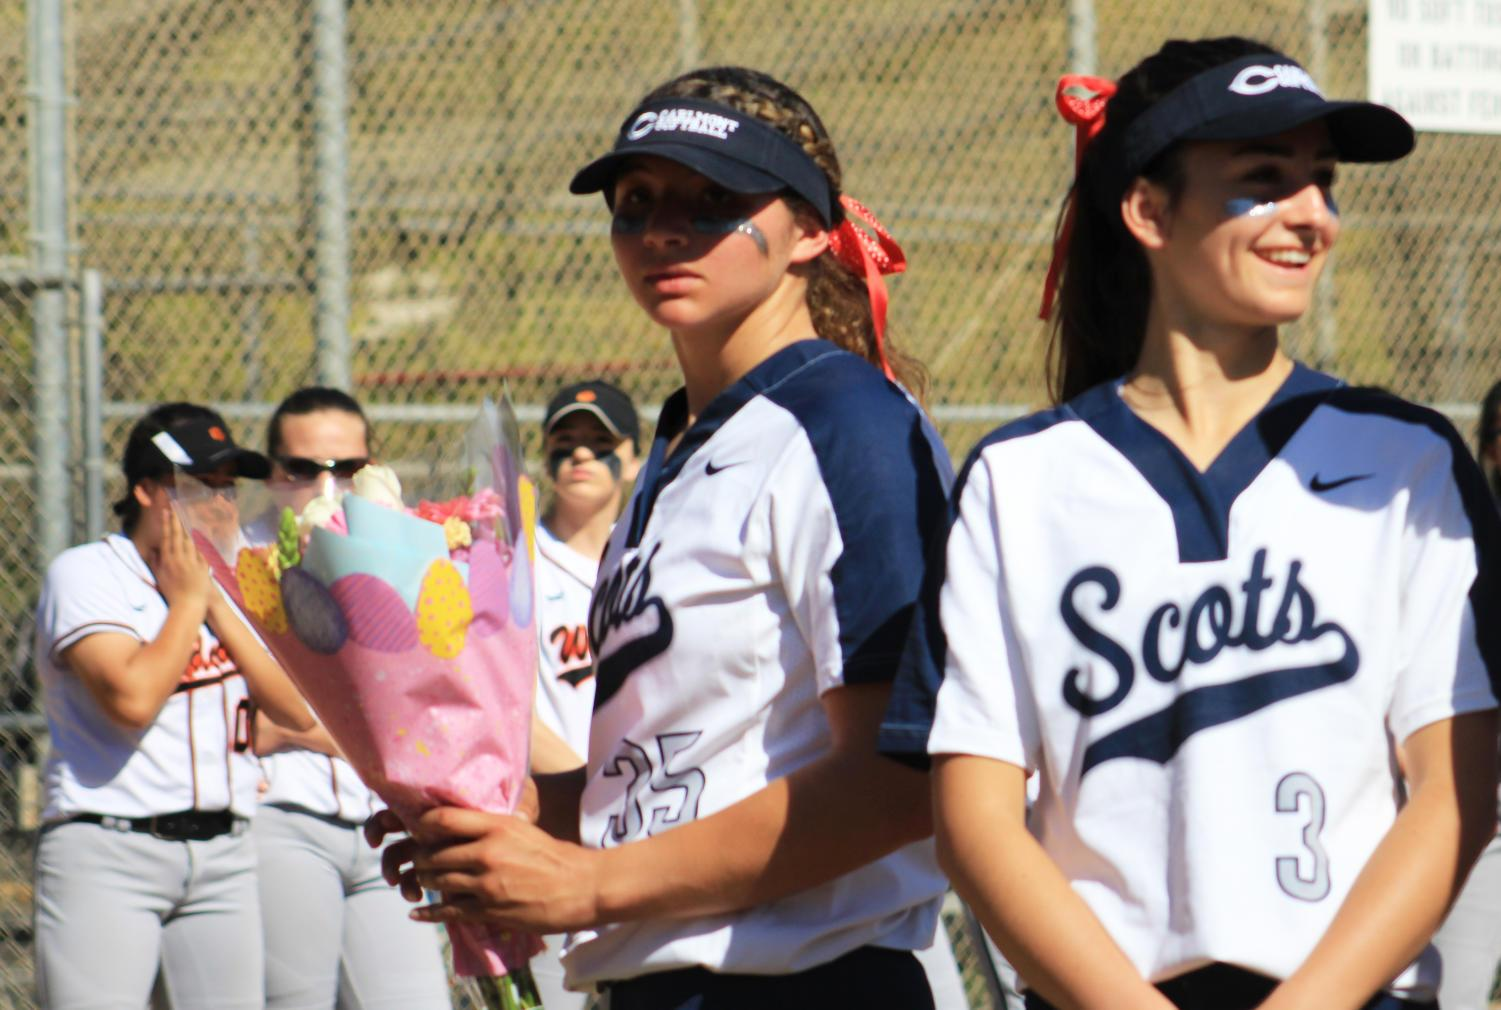 Senior captain and pitcher for the varsity team, Mailey McLemore, holds a bouquet of flowers for Jim Liggett's wife, Charlene Liggett.